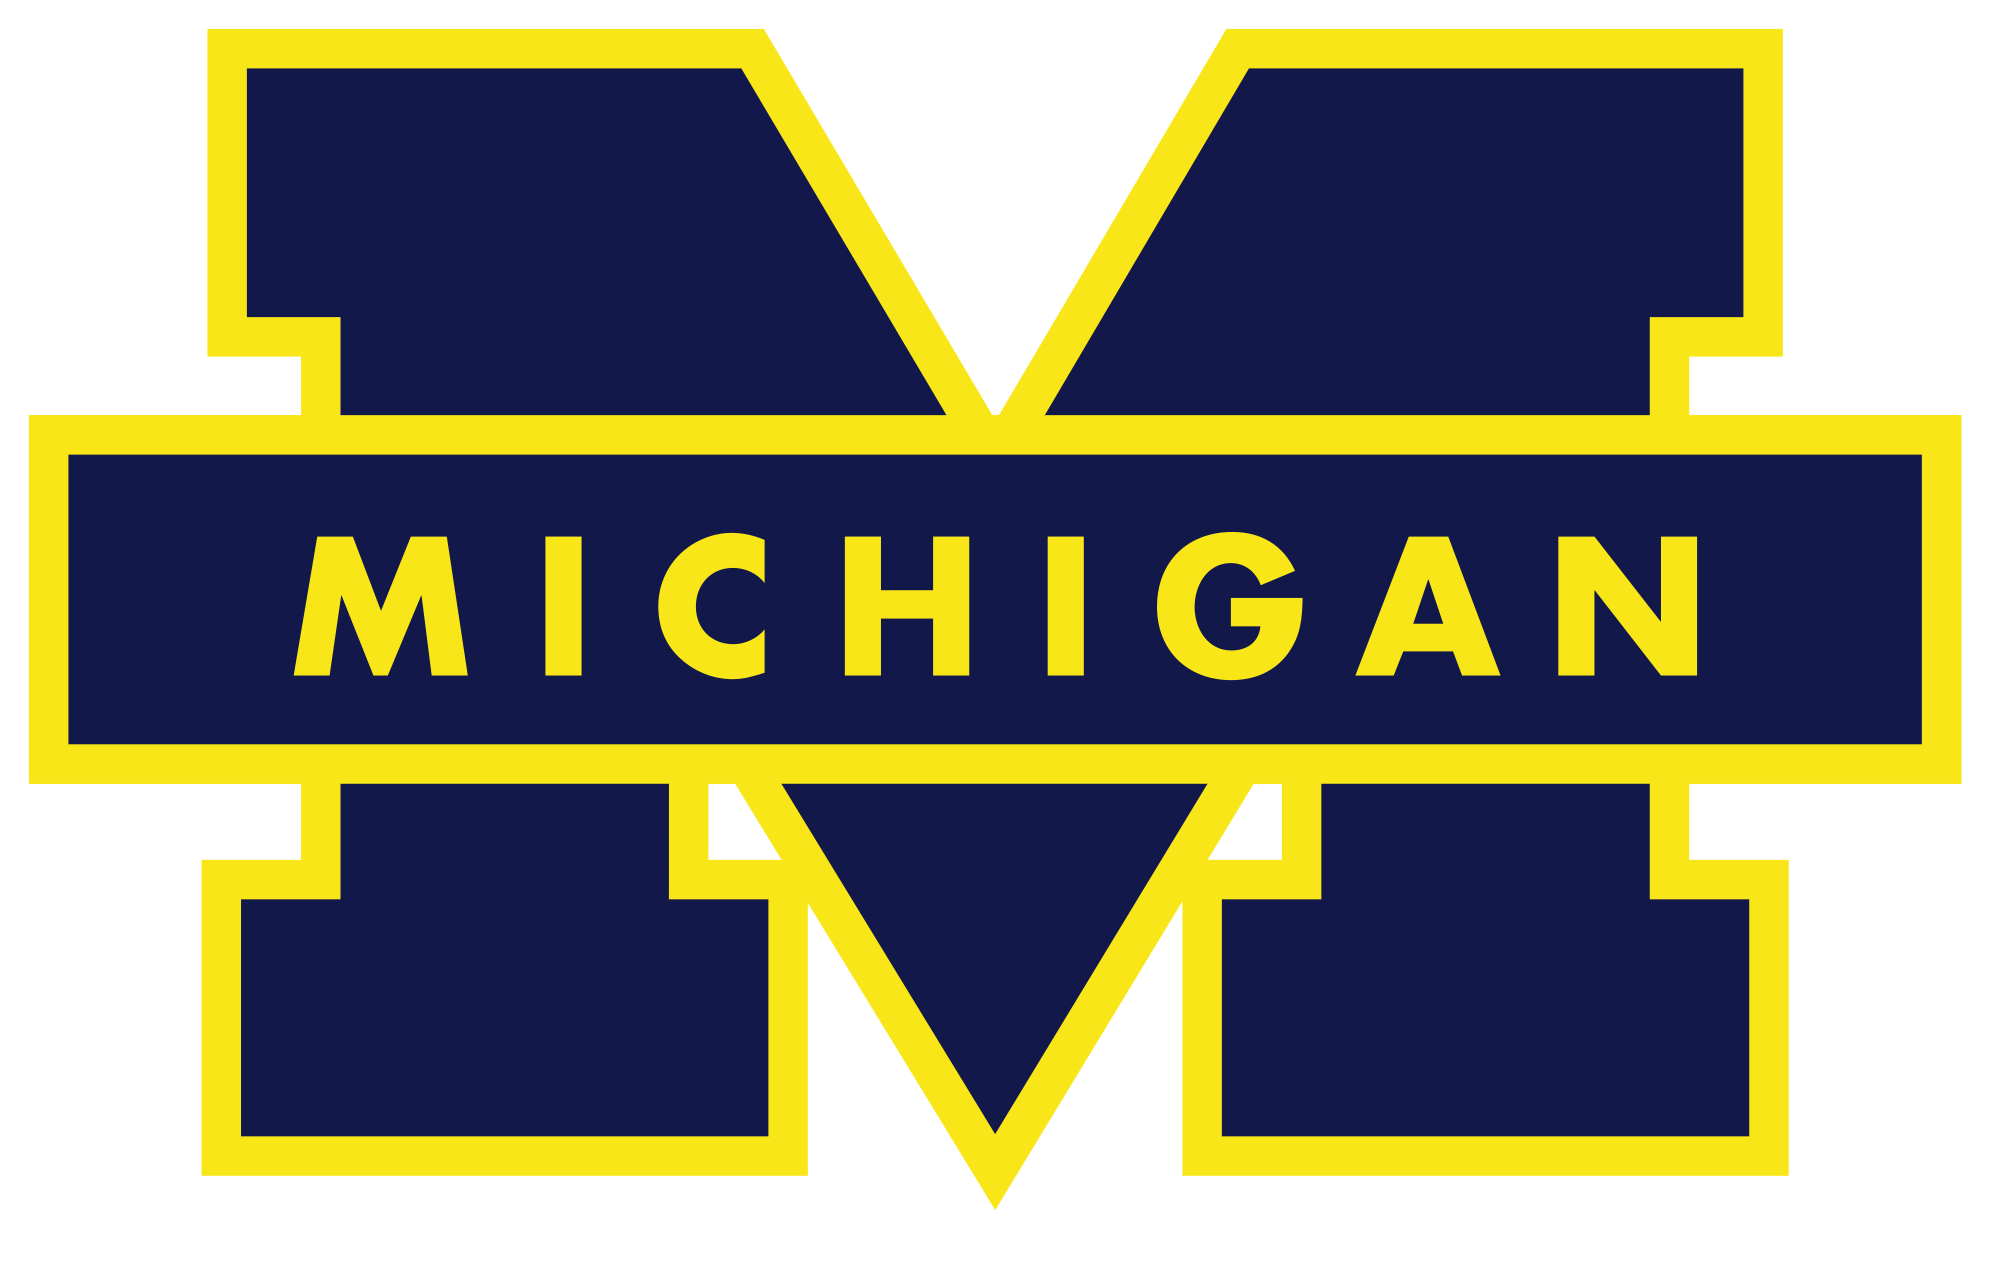 Michigan svg #14, Download drawings